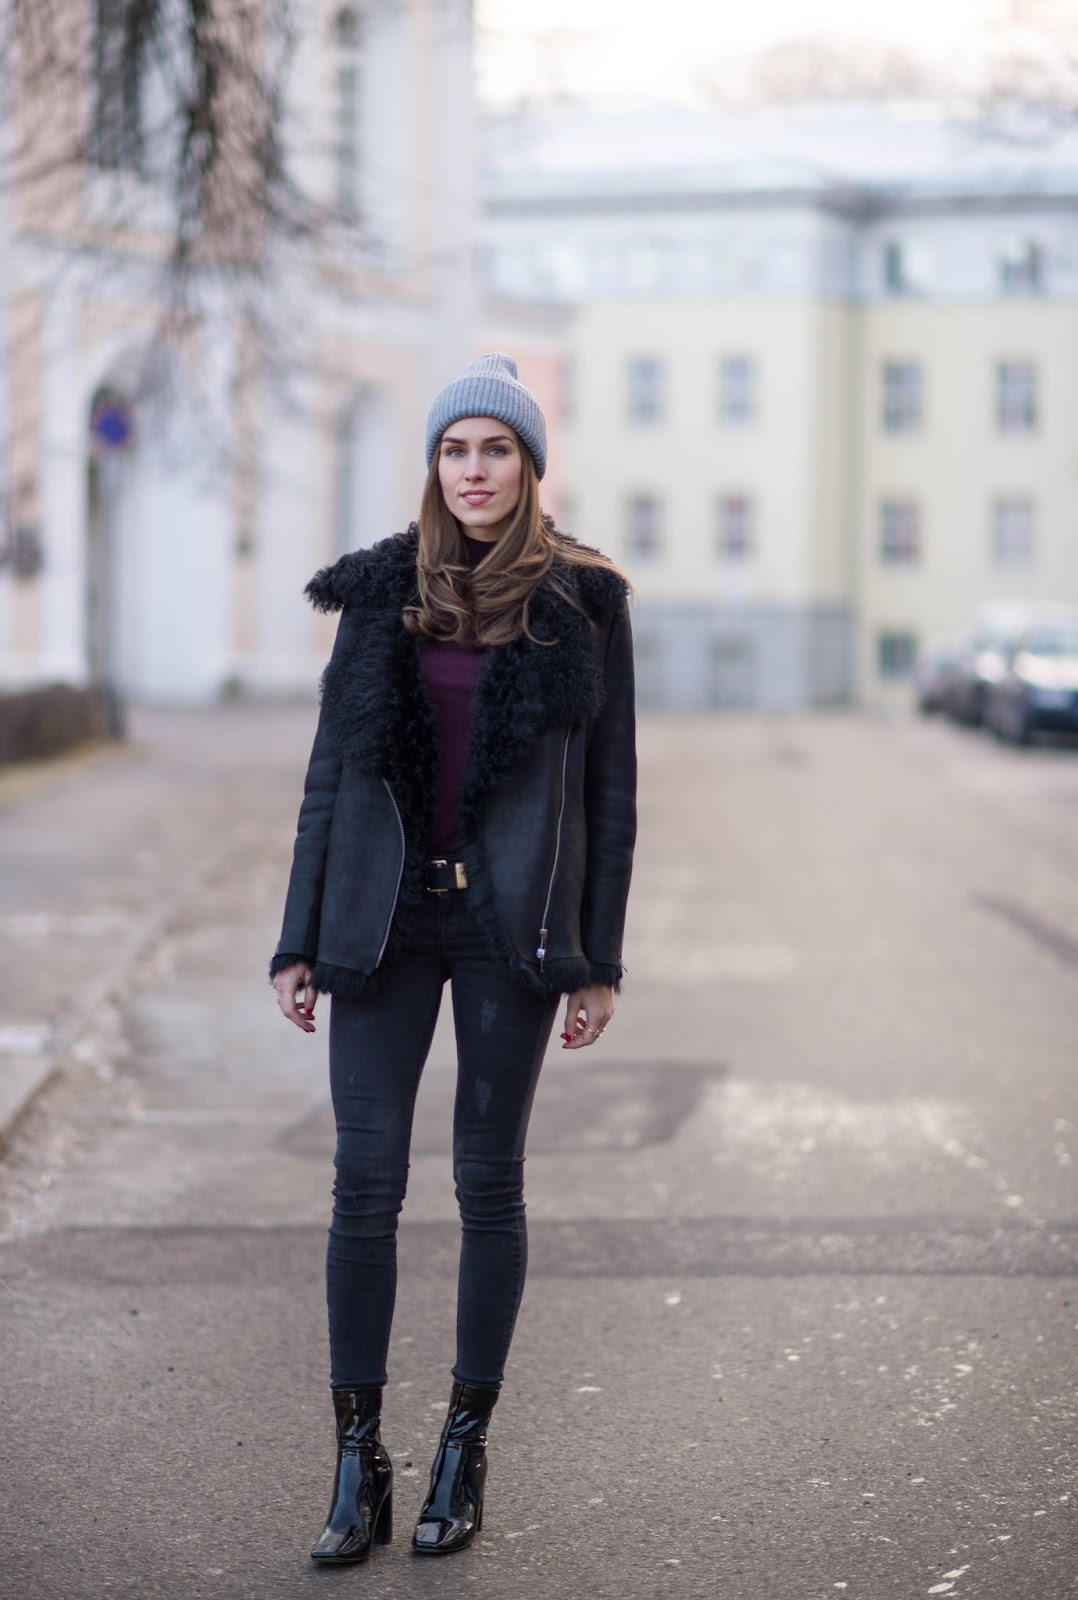 patent sock boots outfit winter shearling jacket